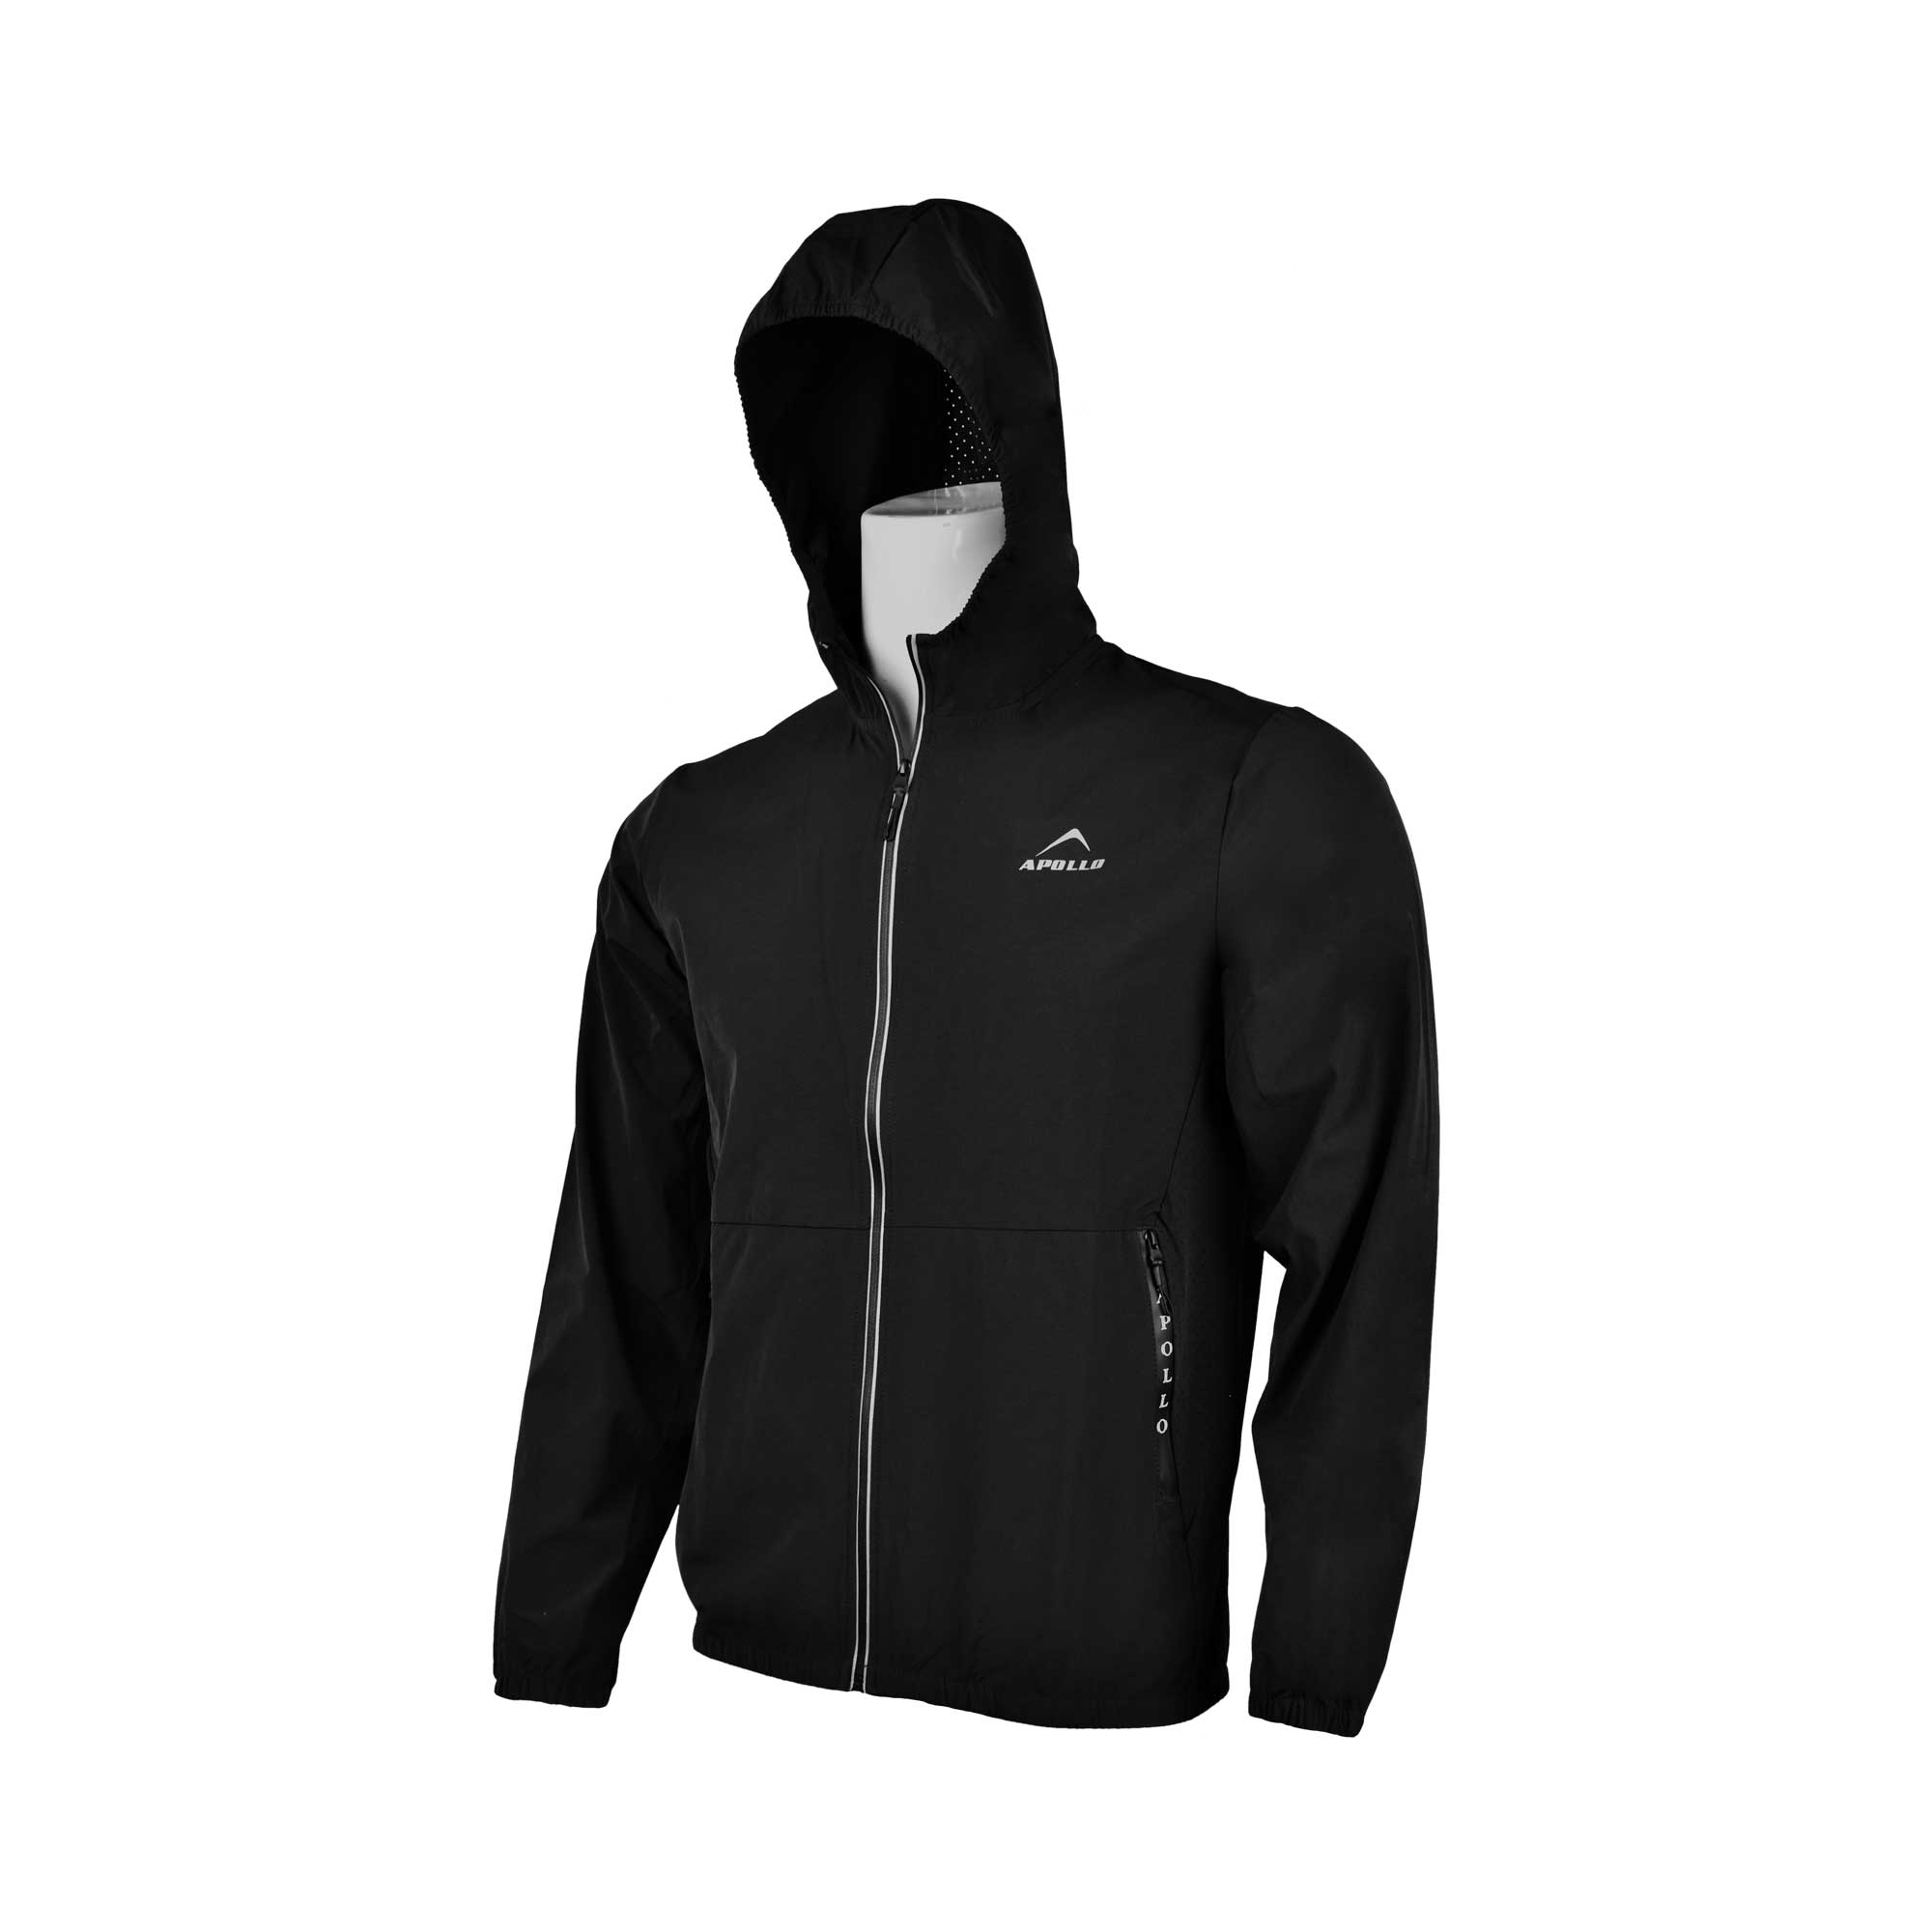 MENS SPORTS CASUAL RUNNING TRAINING LIGHT WEIGHT EARLY WINTERS MICRO TWILL UPPER HOODIE APOLLO 93M350H - BLACK